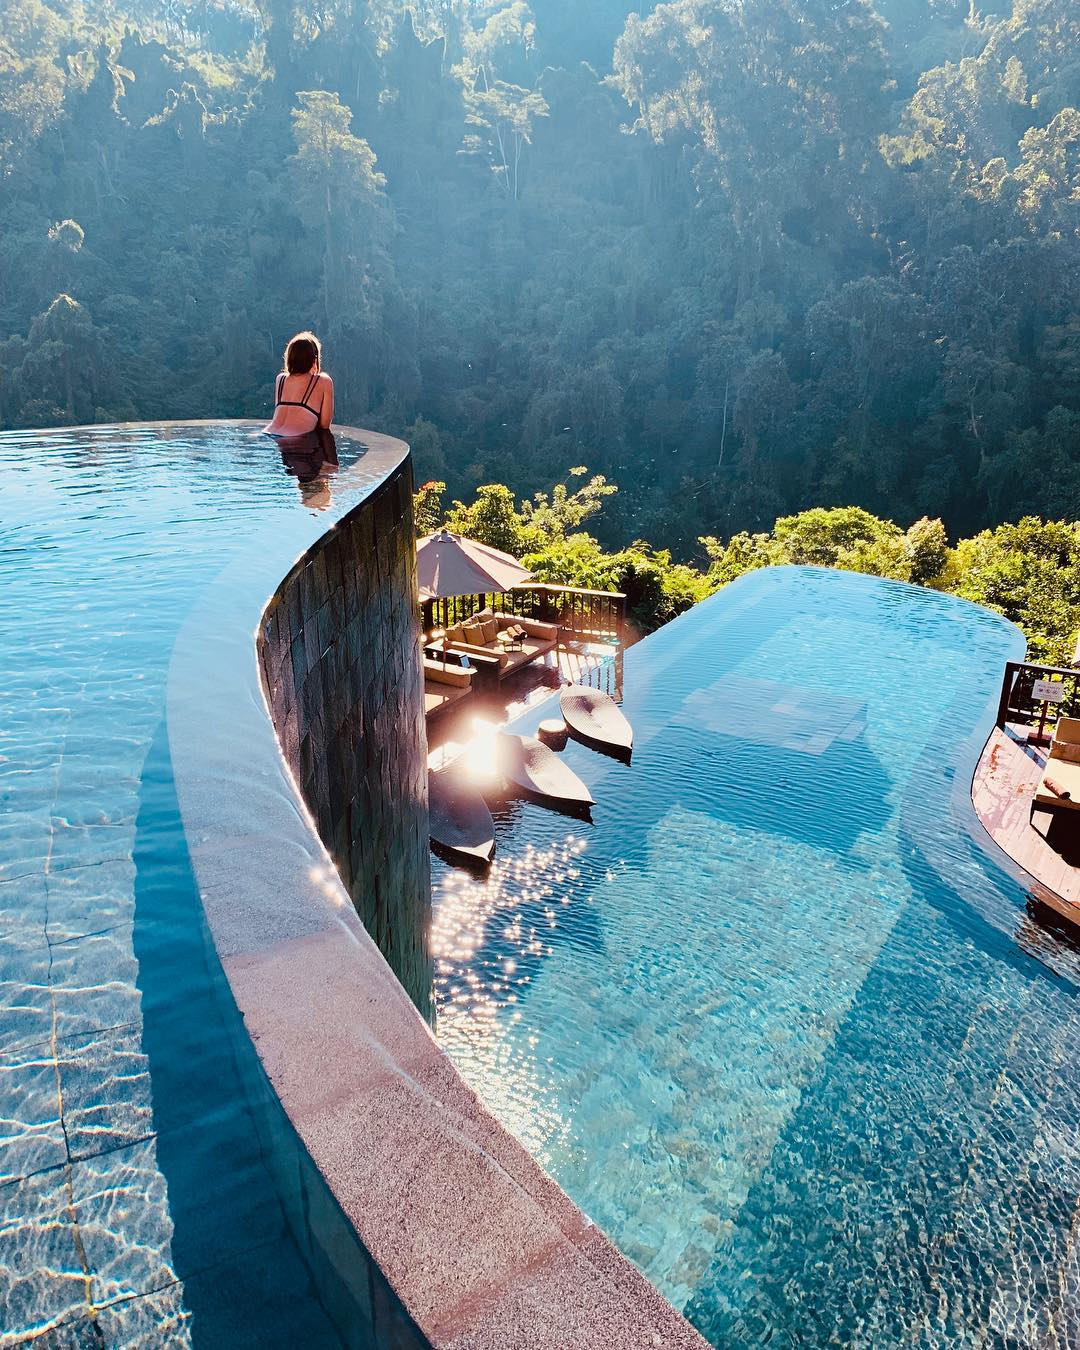 Best hotel pools: Hanging Gardens Bali, Bali.